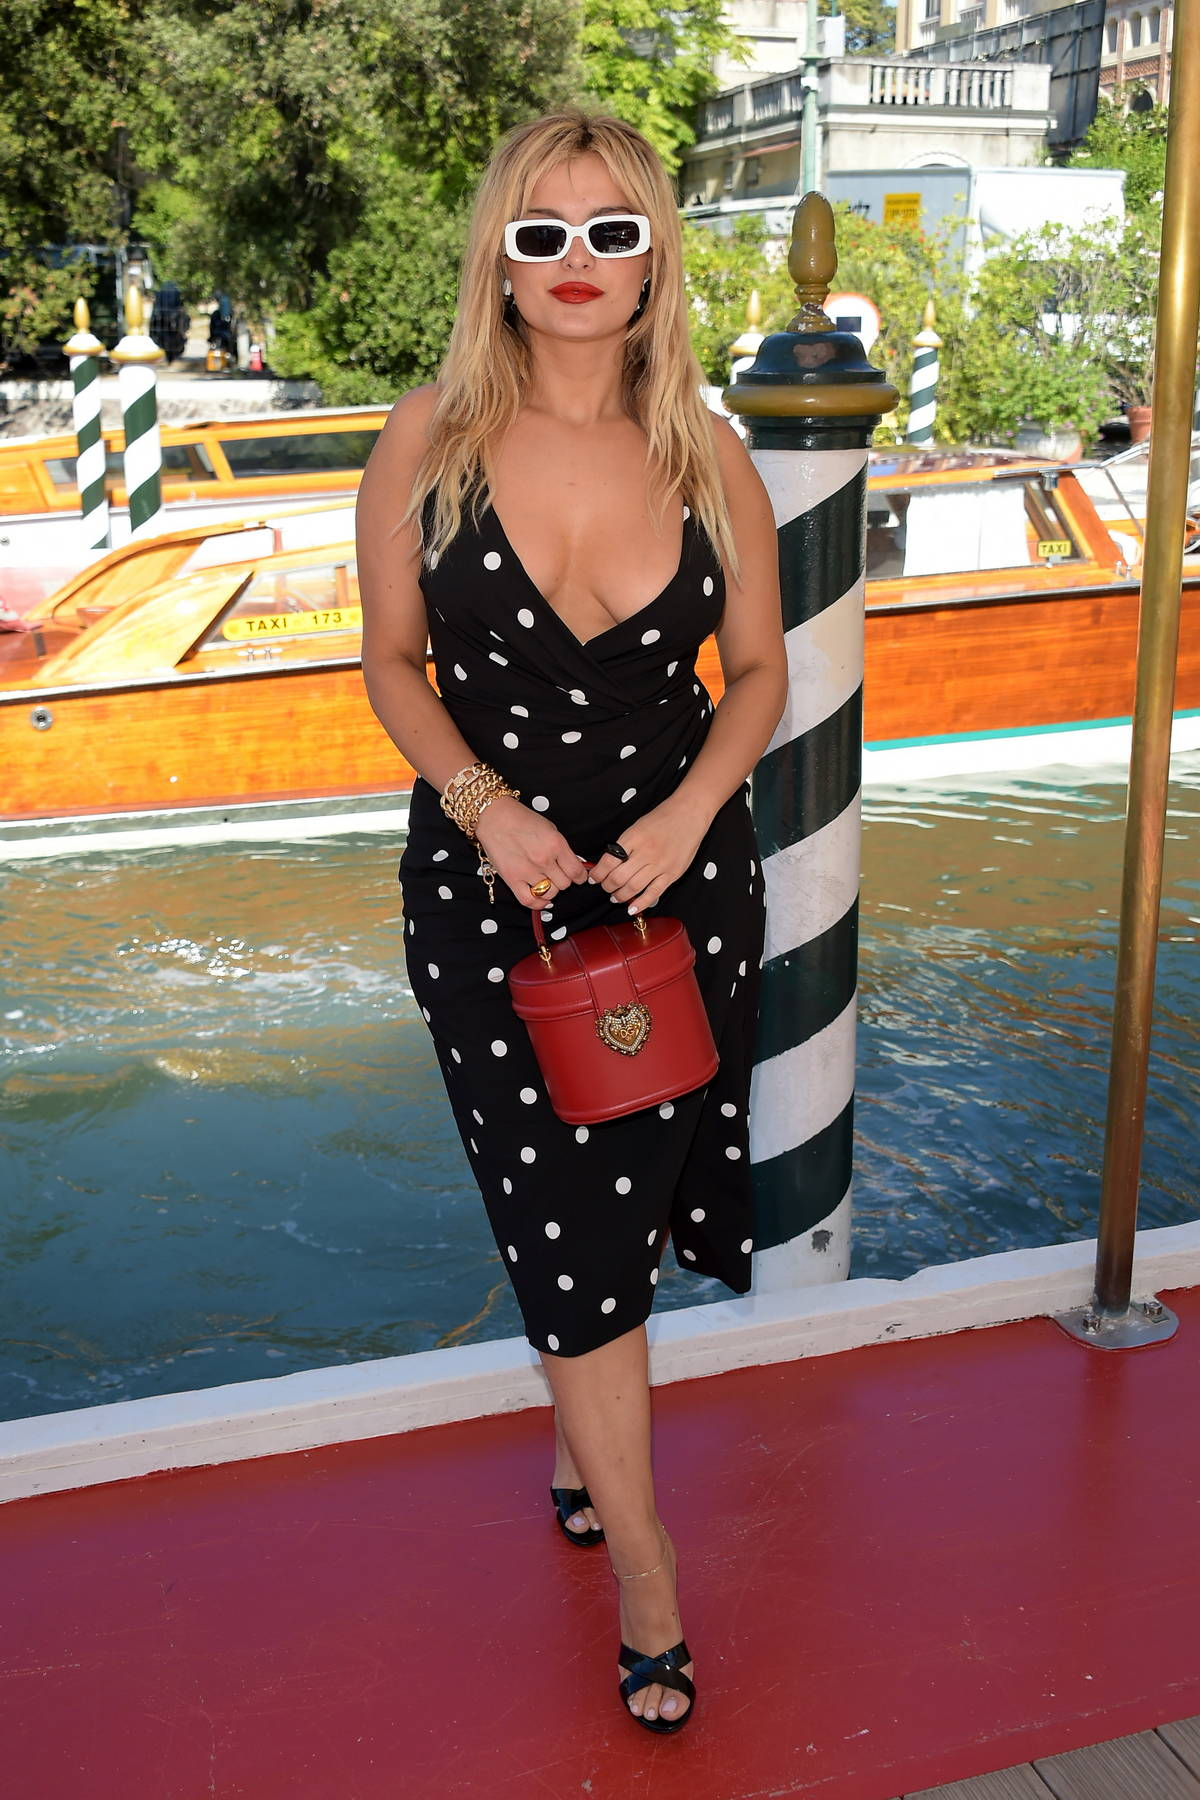 Bebe Rexha looks gorgeous in a plunging polka dot dress while attending the Dolce & Gabbana event in Venice, Italy